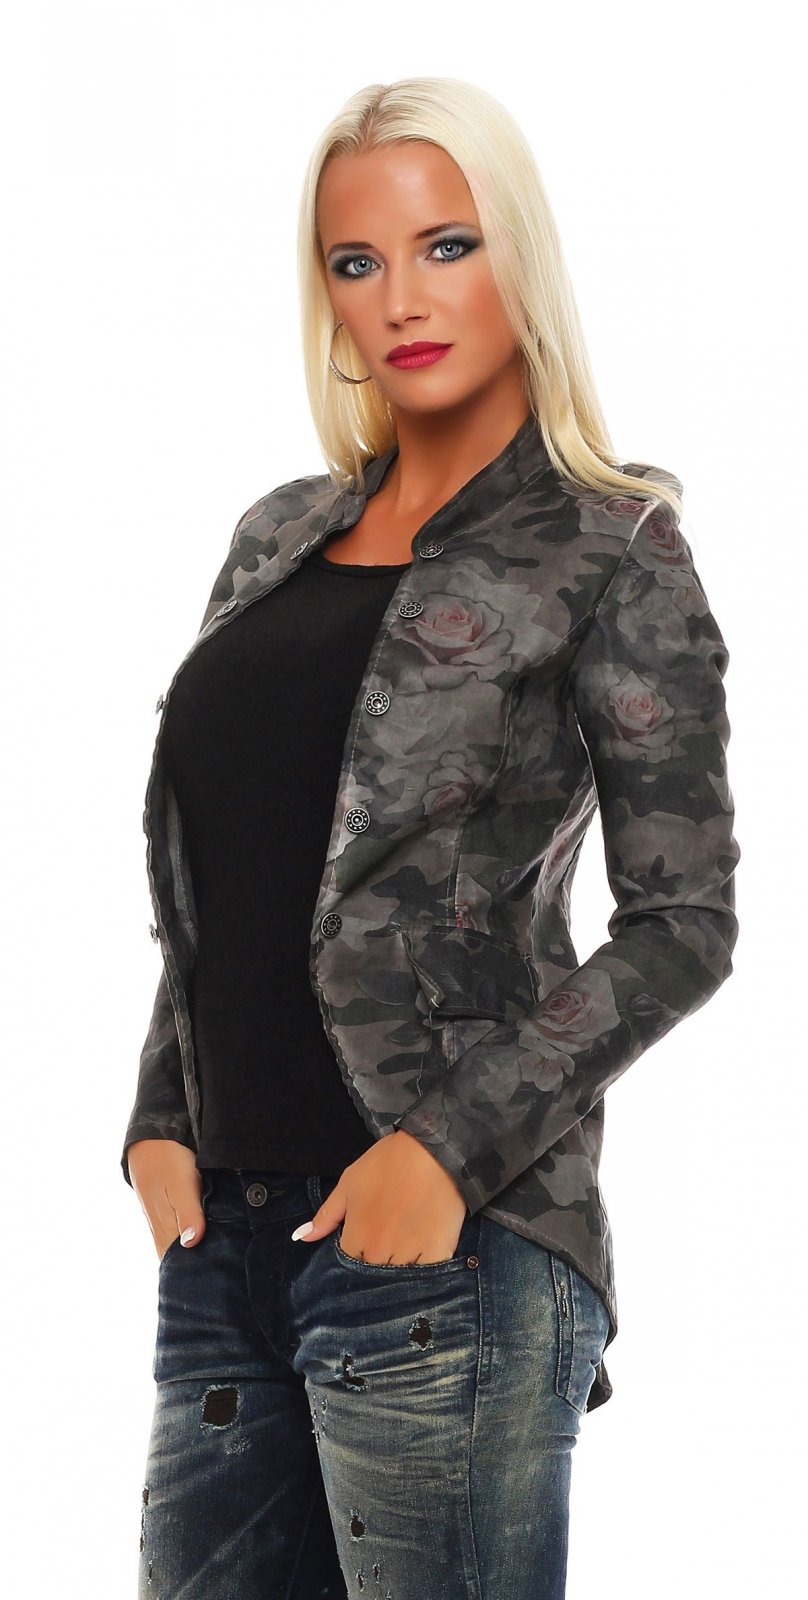 damen blazer jacke military jacket camouflage uniform stil. Black Bedroom Furniture Sets. Home Design Ideas